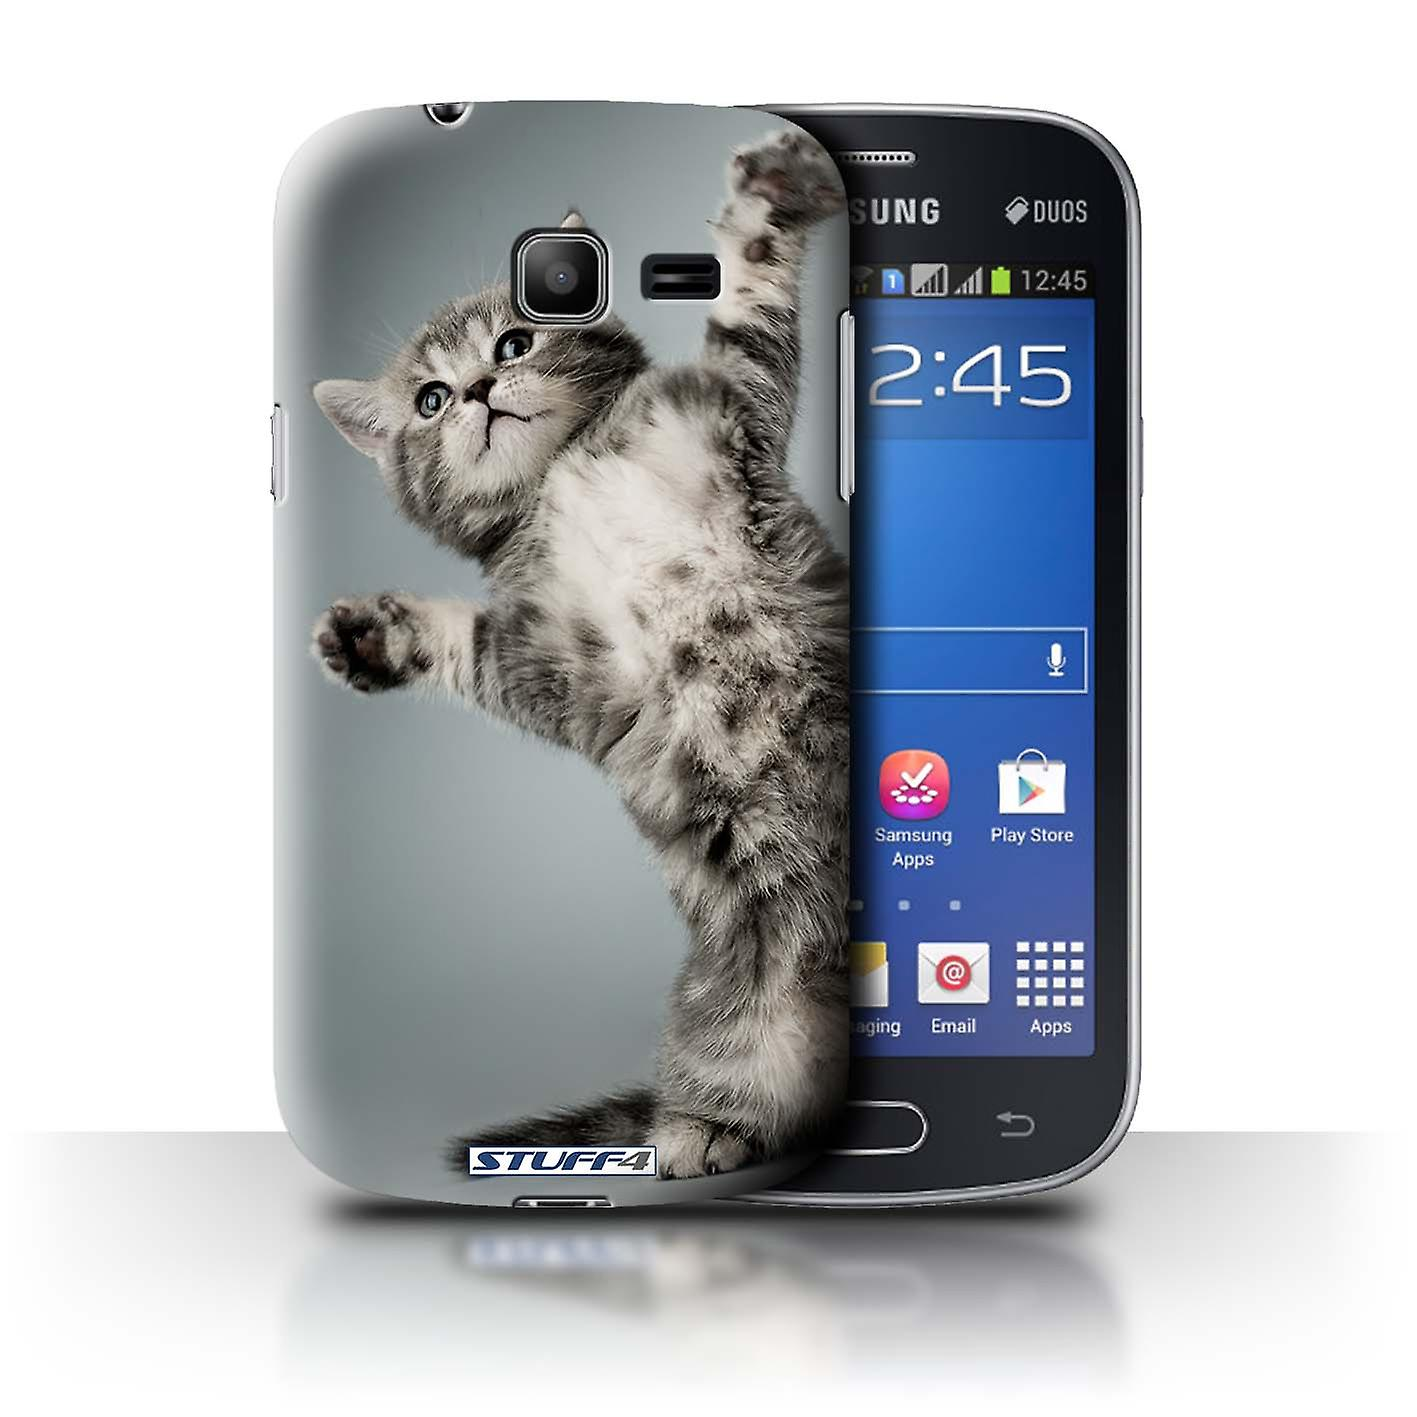 Stuff4 Case Cover For Samsung Galaxy Star Pro S7260 High Five Cute Sansung Duos Kittens Housses Pour Tlphones Mobiles